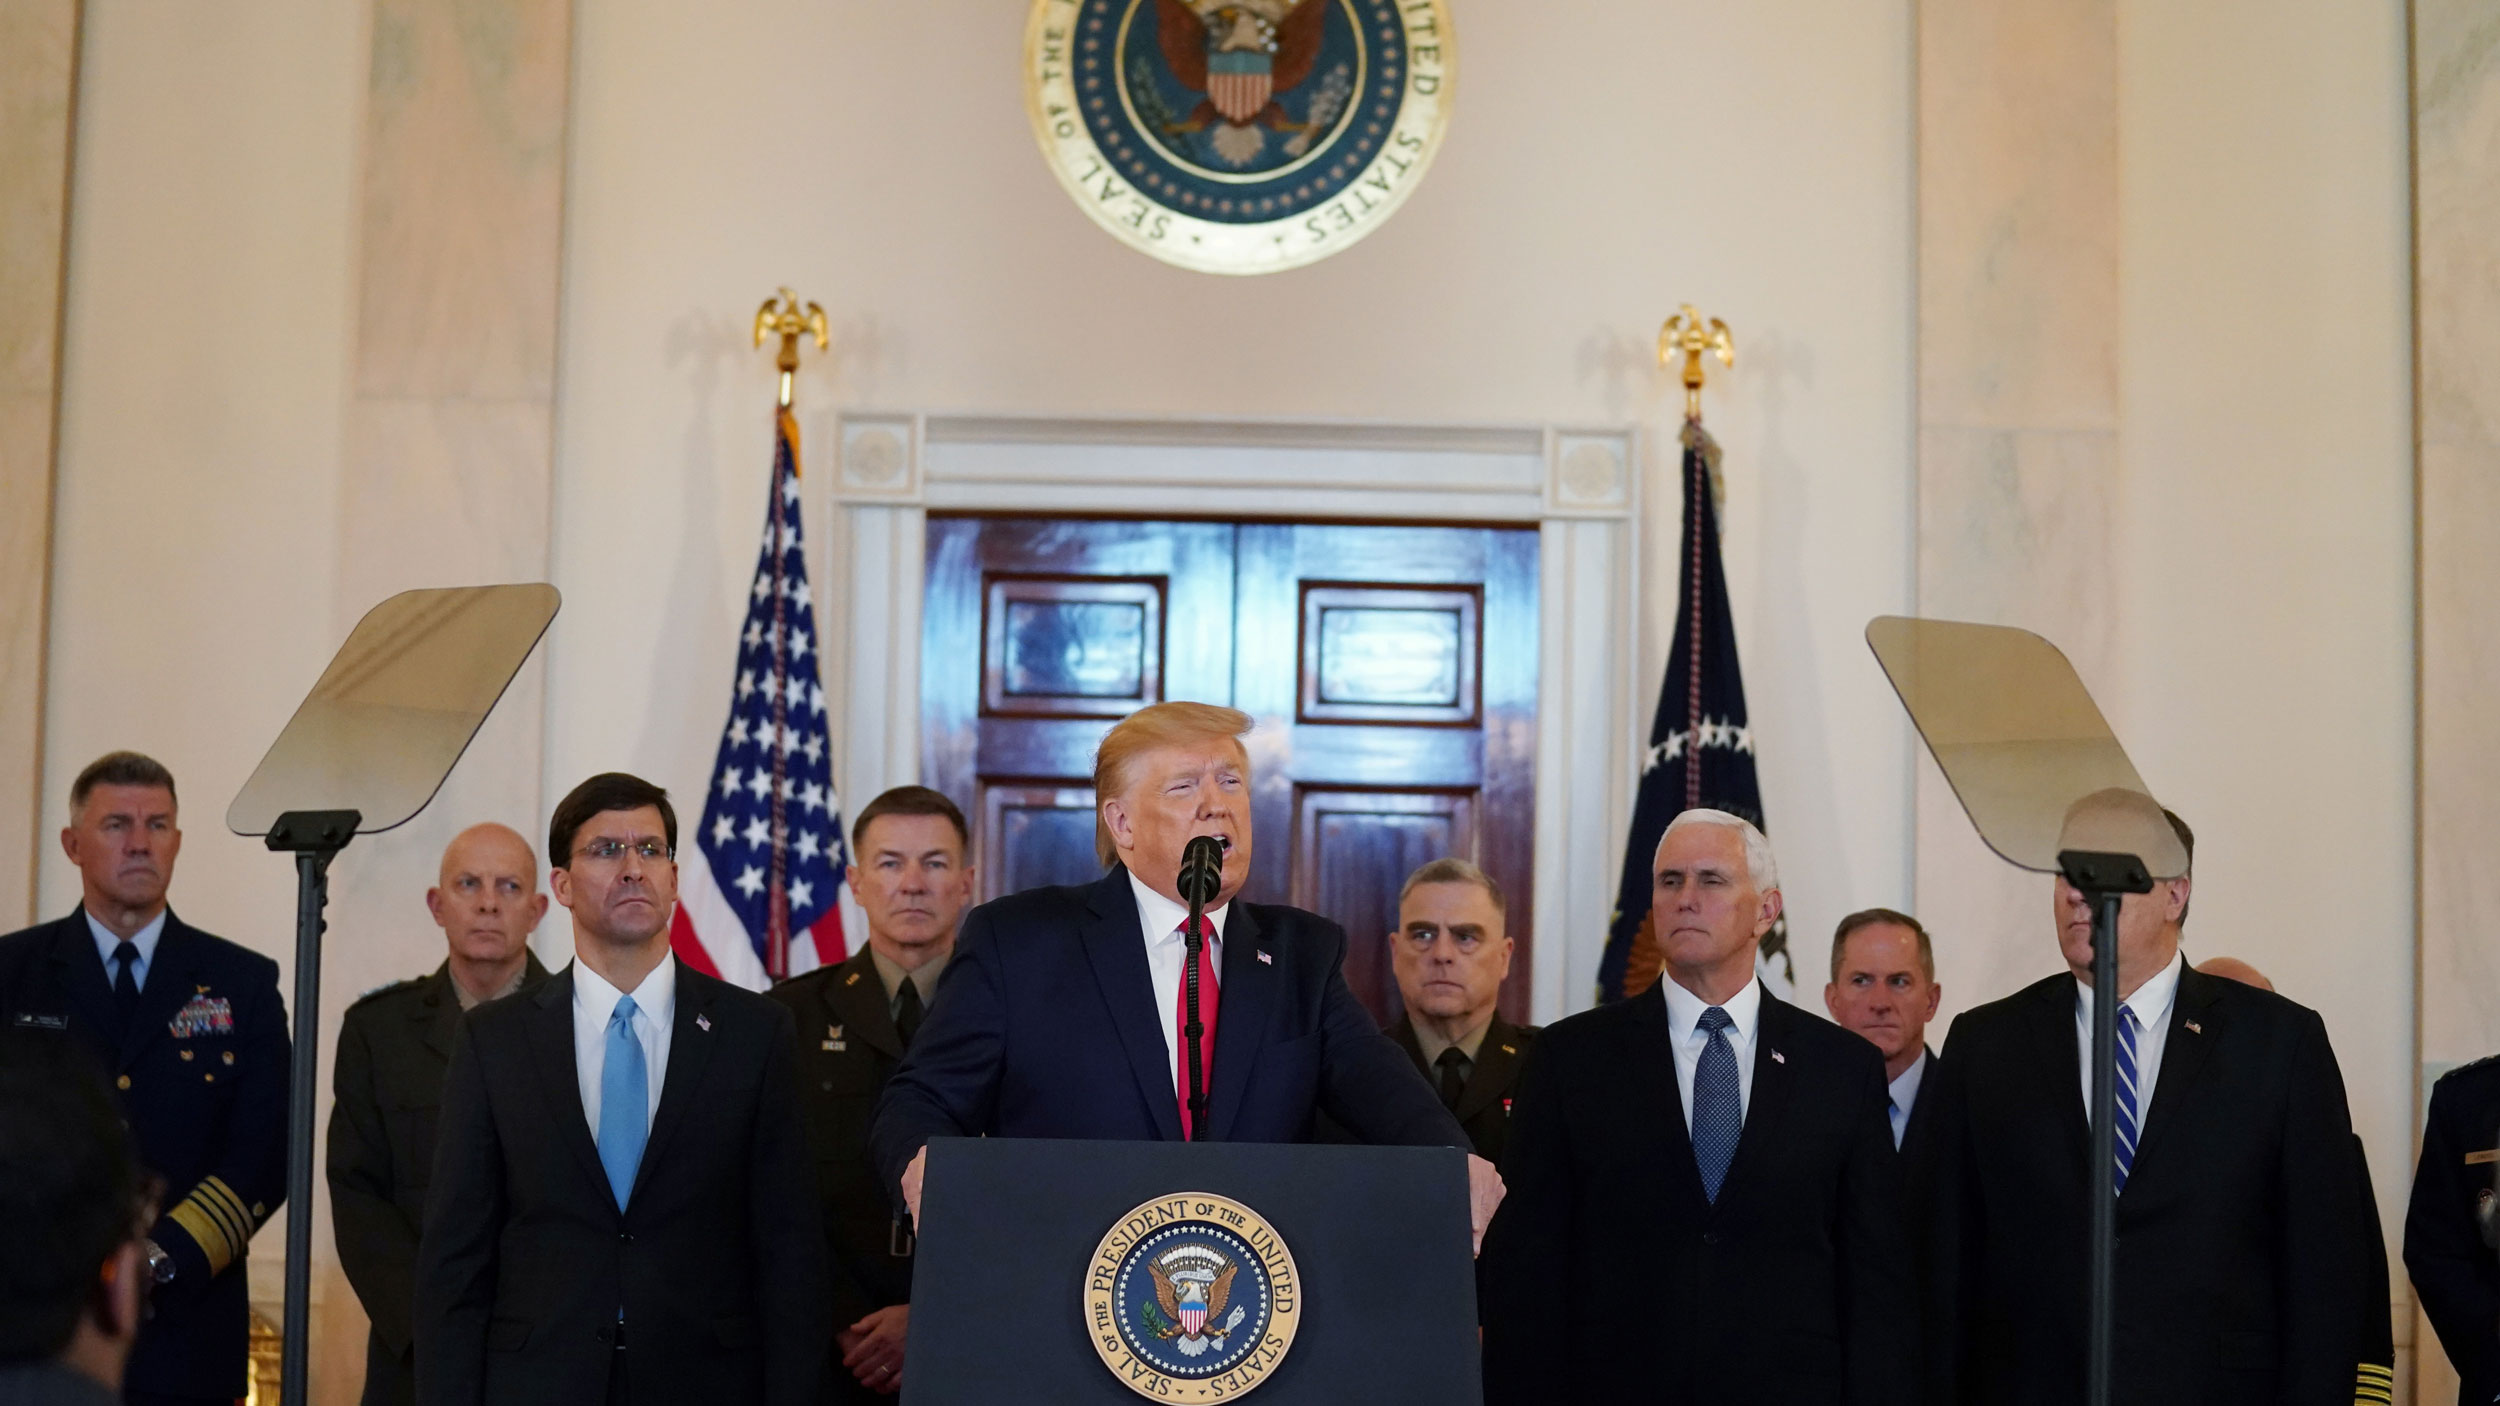 US President Donald Trump is shown speaking from a podium wearing a dark suit and red tie.